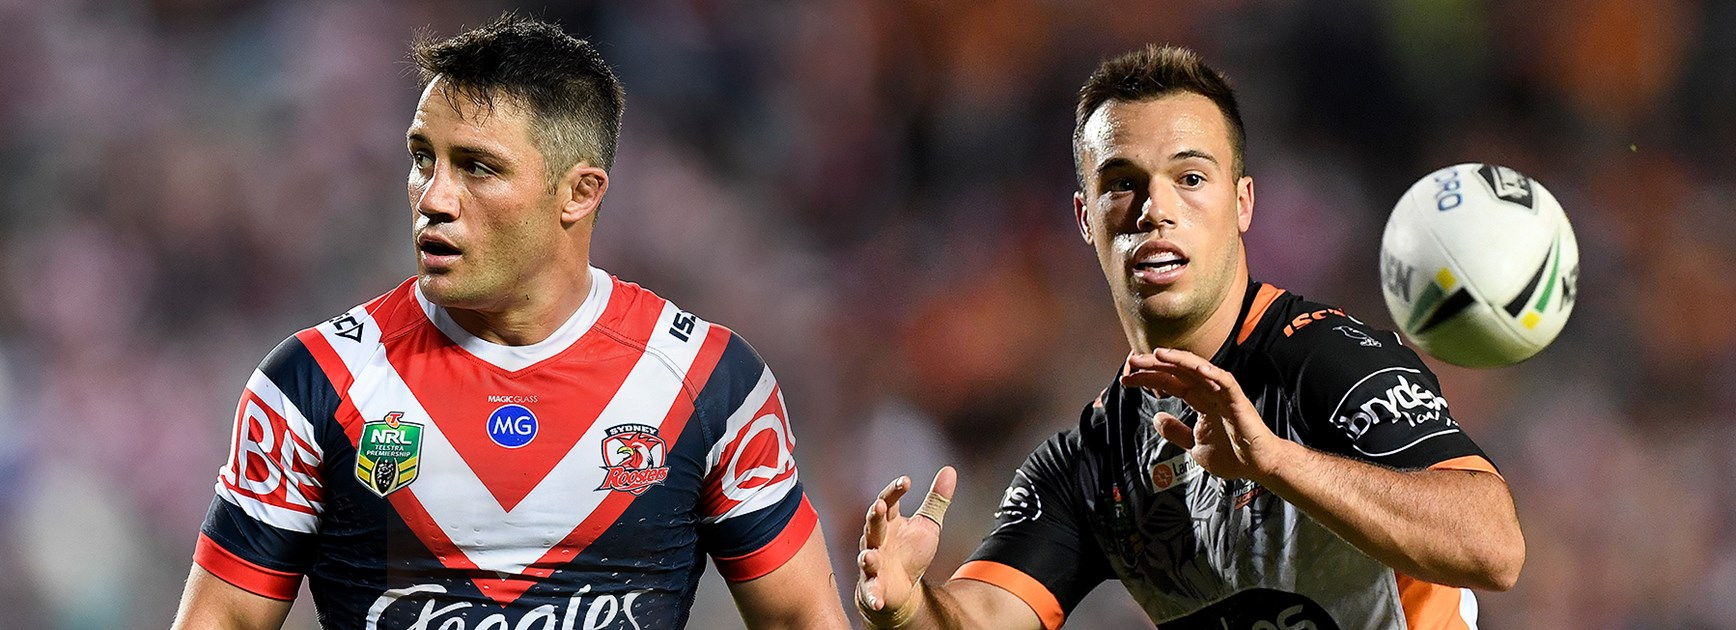 Match Preview | Roosters vs Wests Tigers